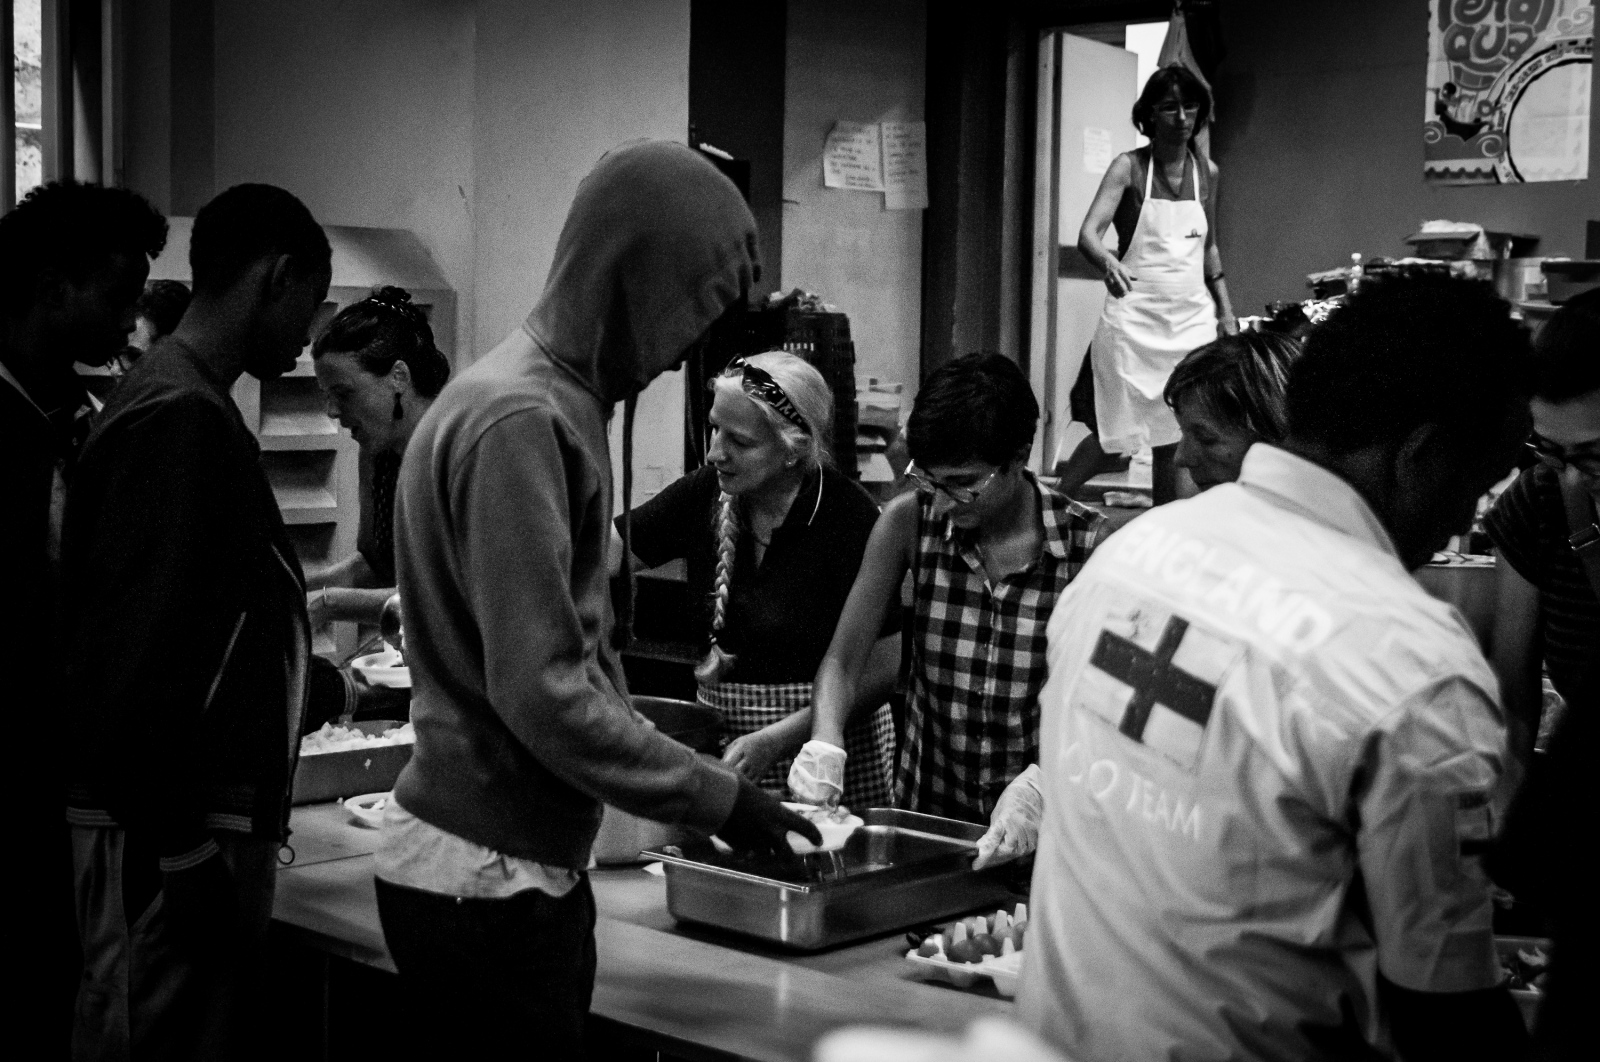 A group of migrants takes a dinner offered by Caritas volunteers in the soup kitchen. Caritas International is a confederation of 165 Catholic relief, development and social service organizations operating in over 200 countries and territories worldwide.